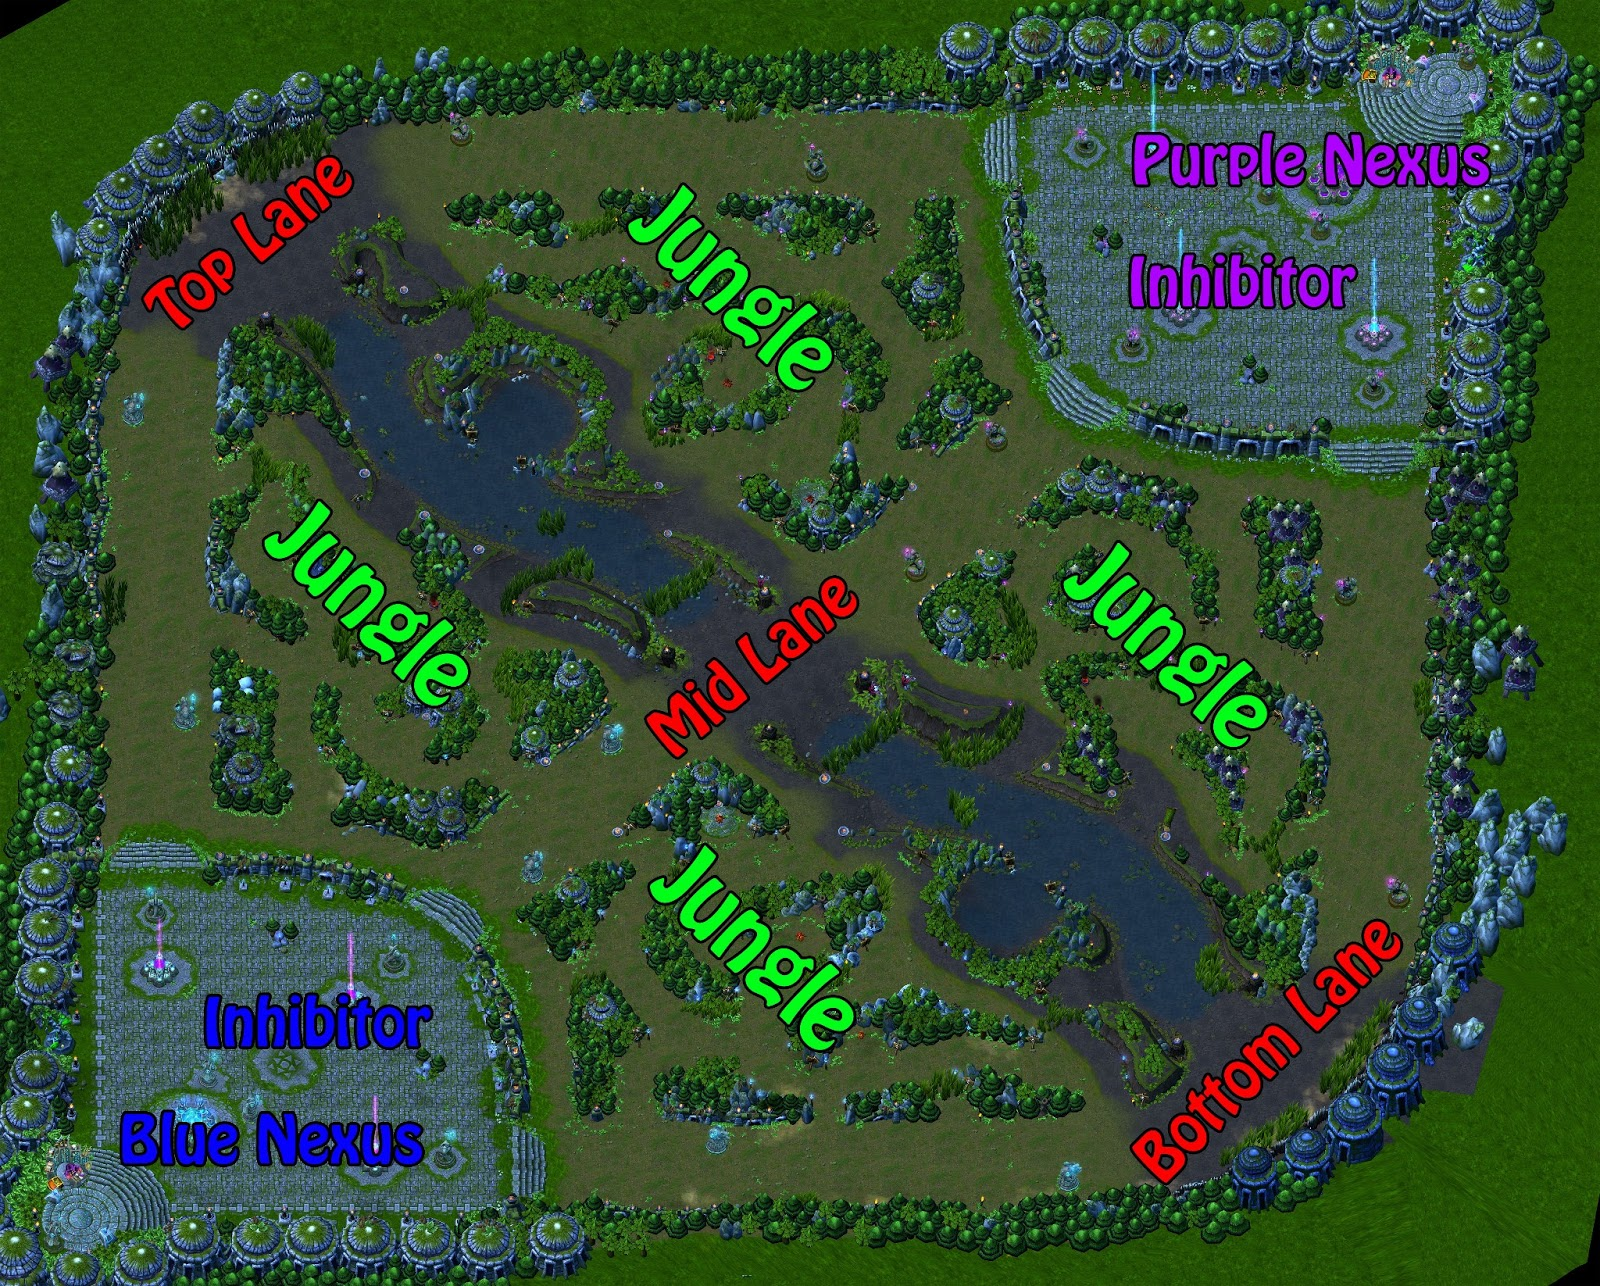 league of legends gamer lol map - lol map